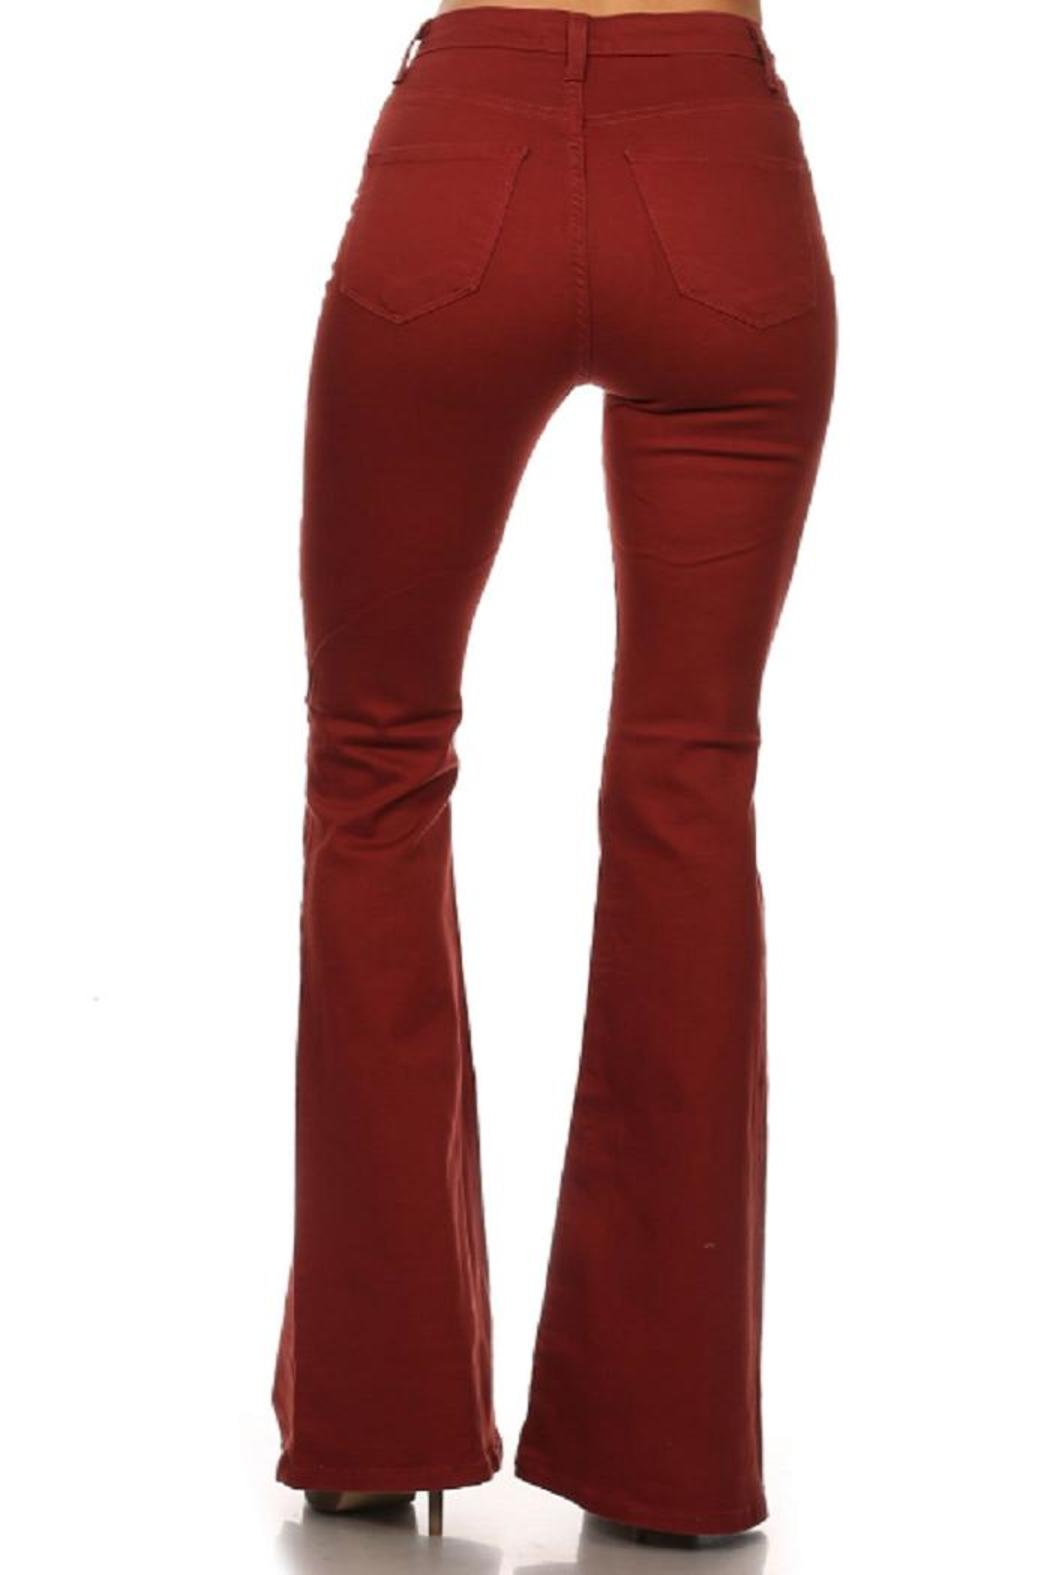 Vibrant MIU Bell Bottom Jeans From Missouri By Domi More Shoptiques